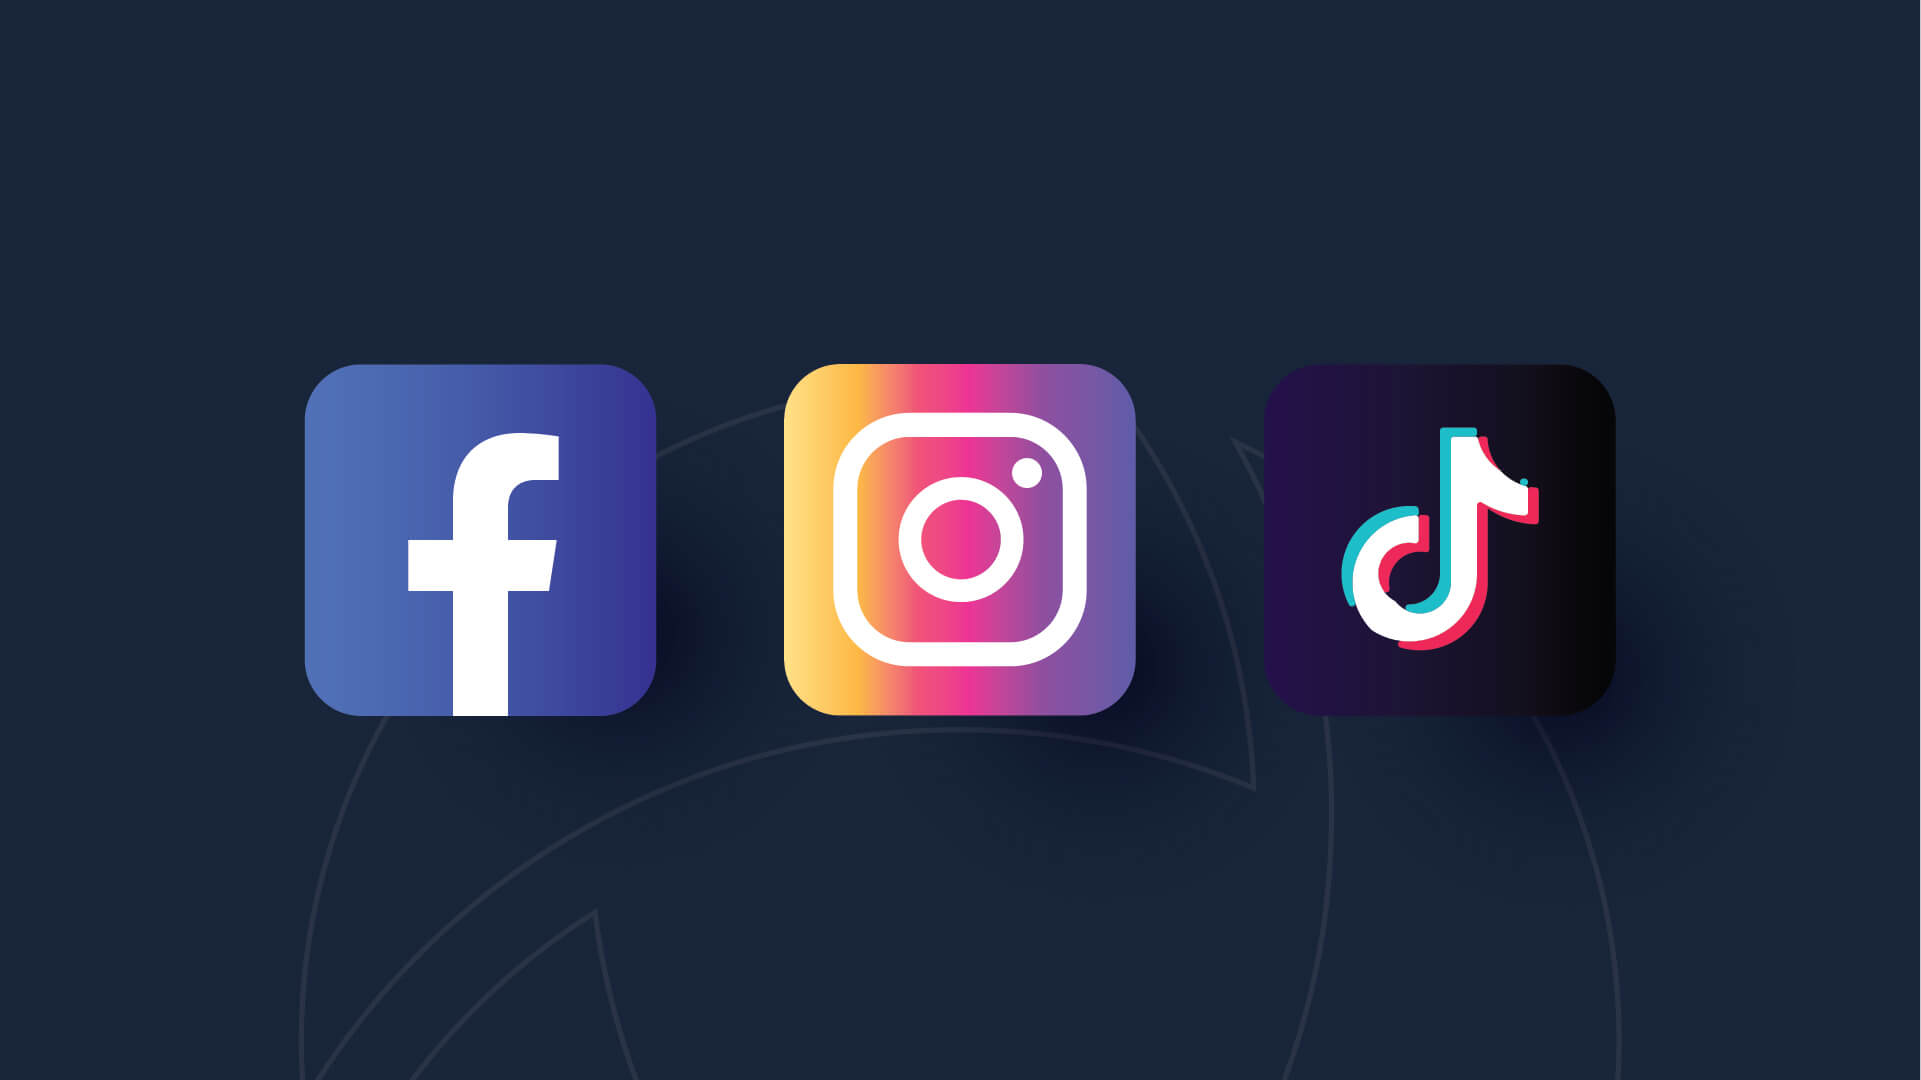 Image with the icons for the popular social media sites, Facebook, Instagram, and TikTok.